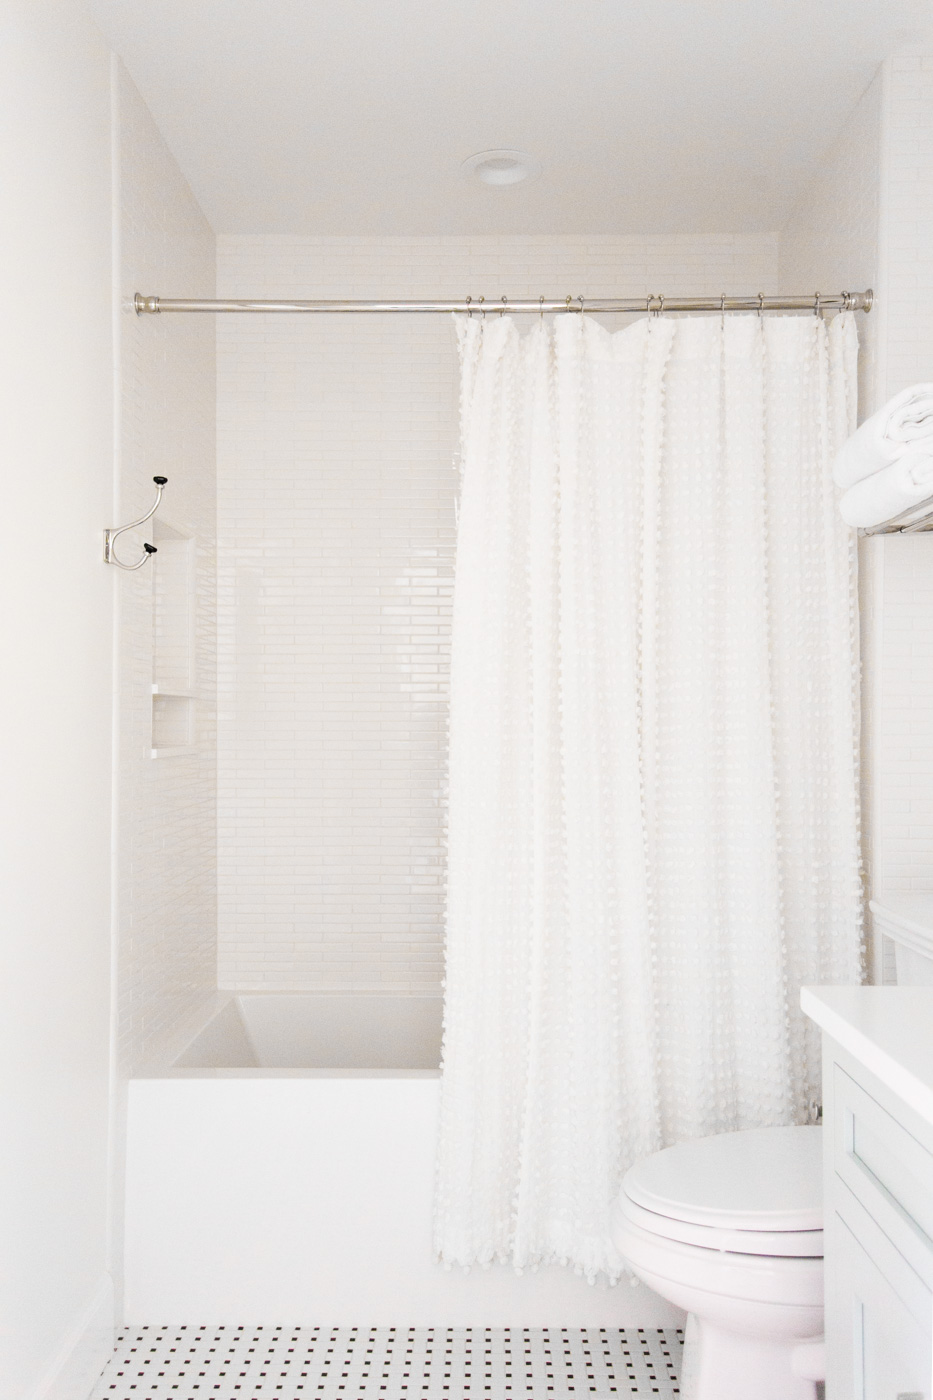 Black/white tile and pom pom shower curtain || Studio McGee